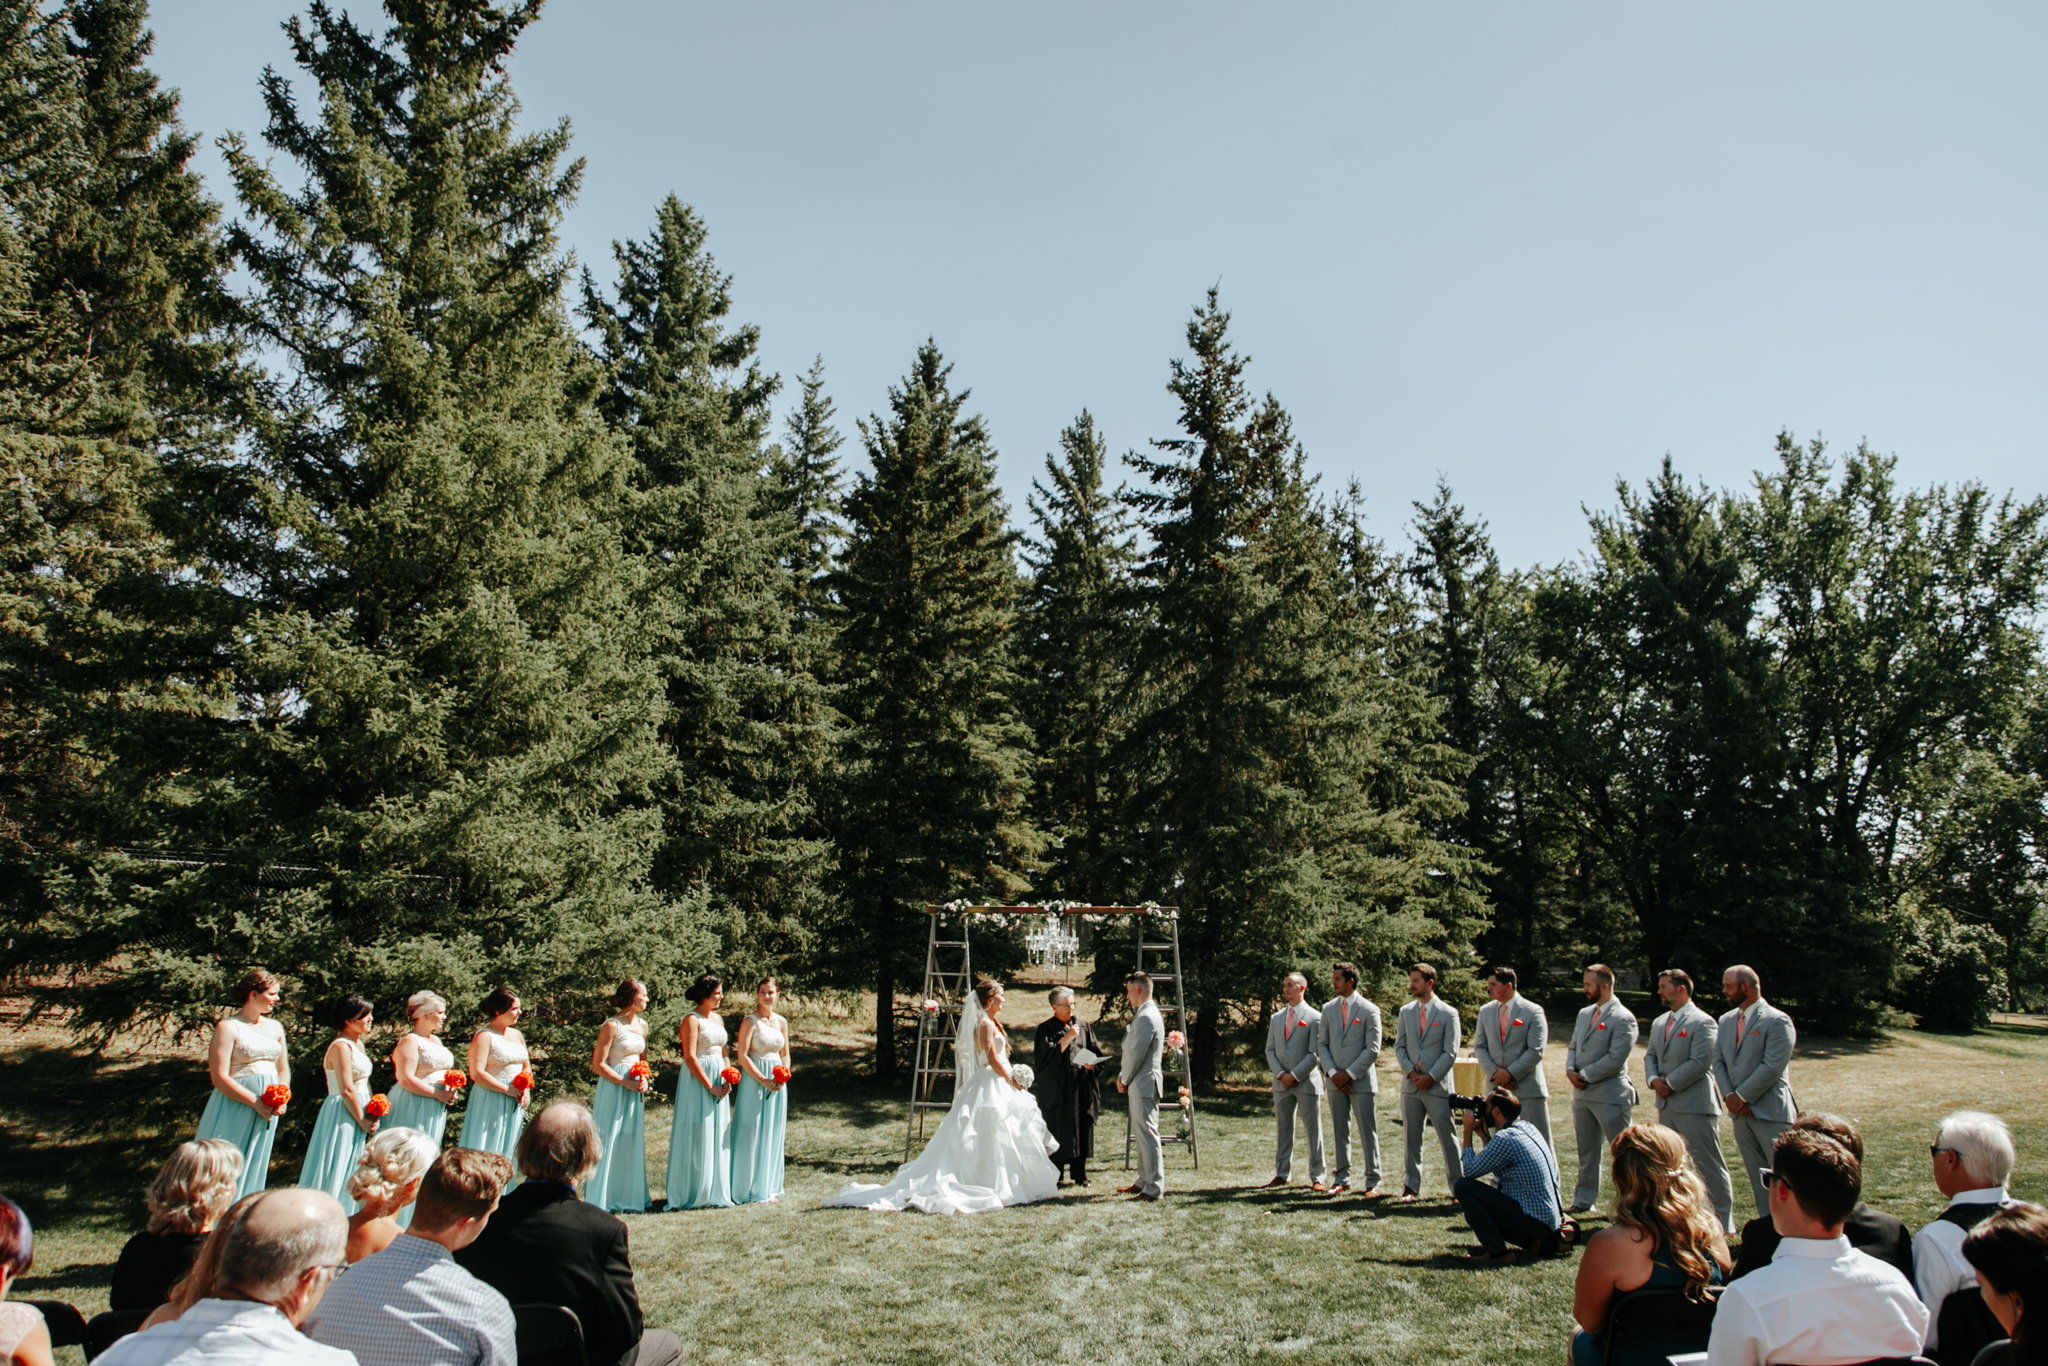 lethbridge-wedding-photography-love-and-be-loved-photographer-sean-sharla-henderson-lake-wedding-image-picture-photo-36.jpg